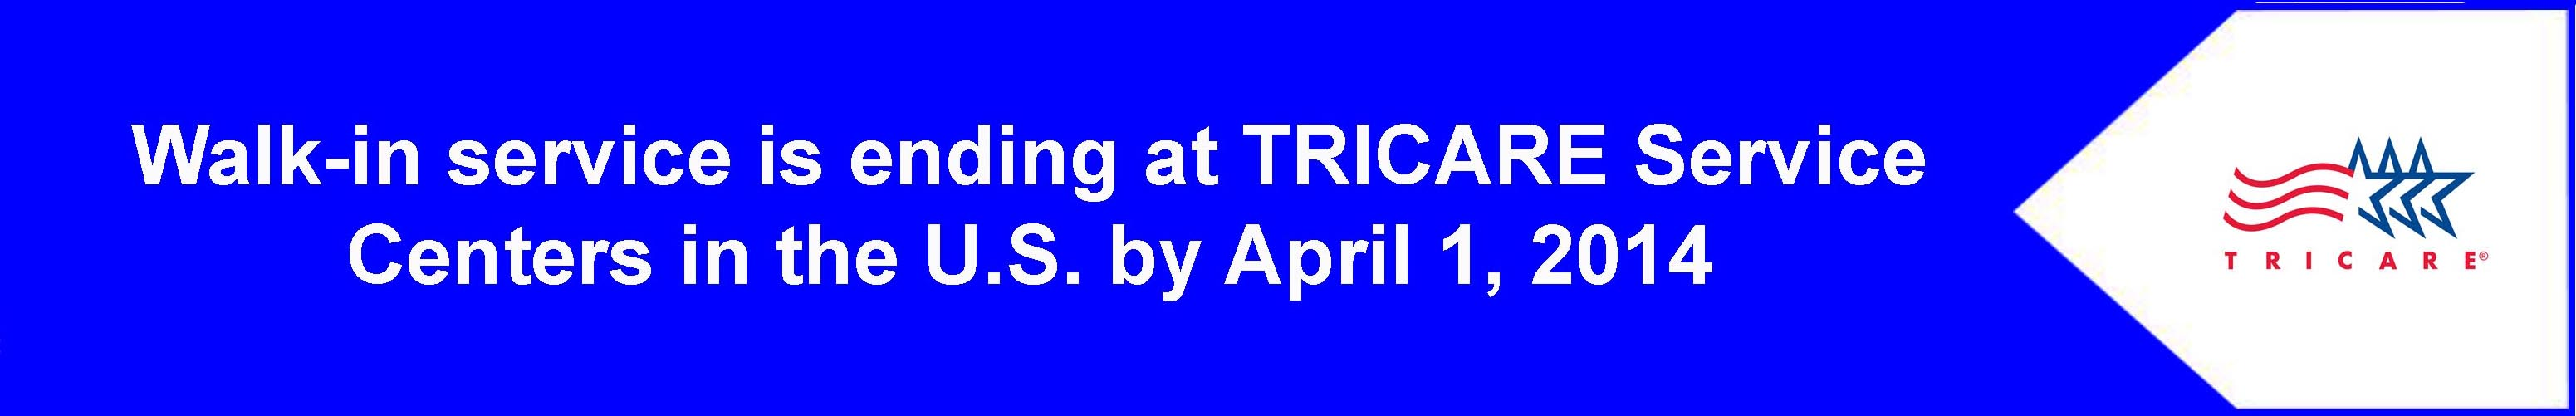 Walk-in service is ending at TRICARE Service Centers in the U.S. by April 1, 2014